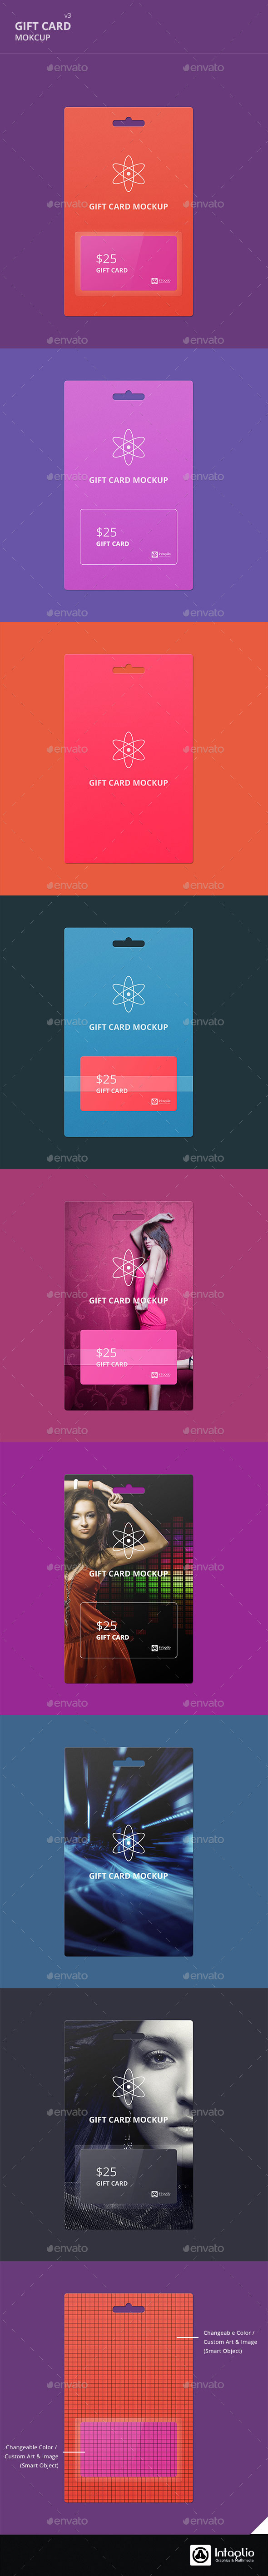 Gift Card Mockup v3 - Miscellaneous Print